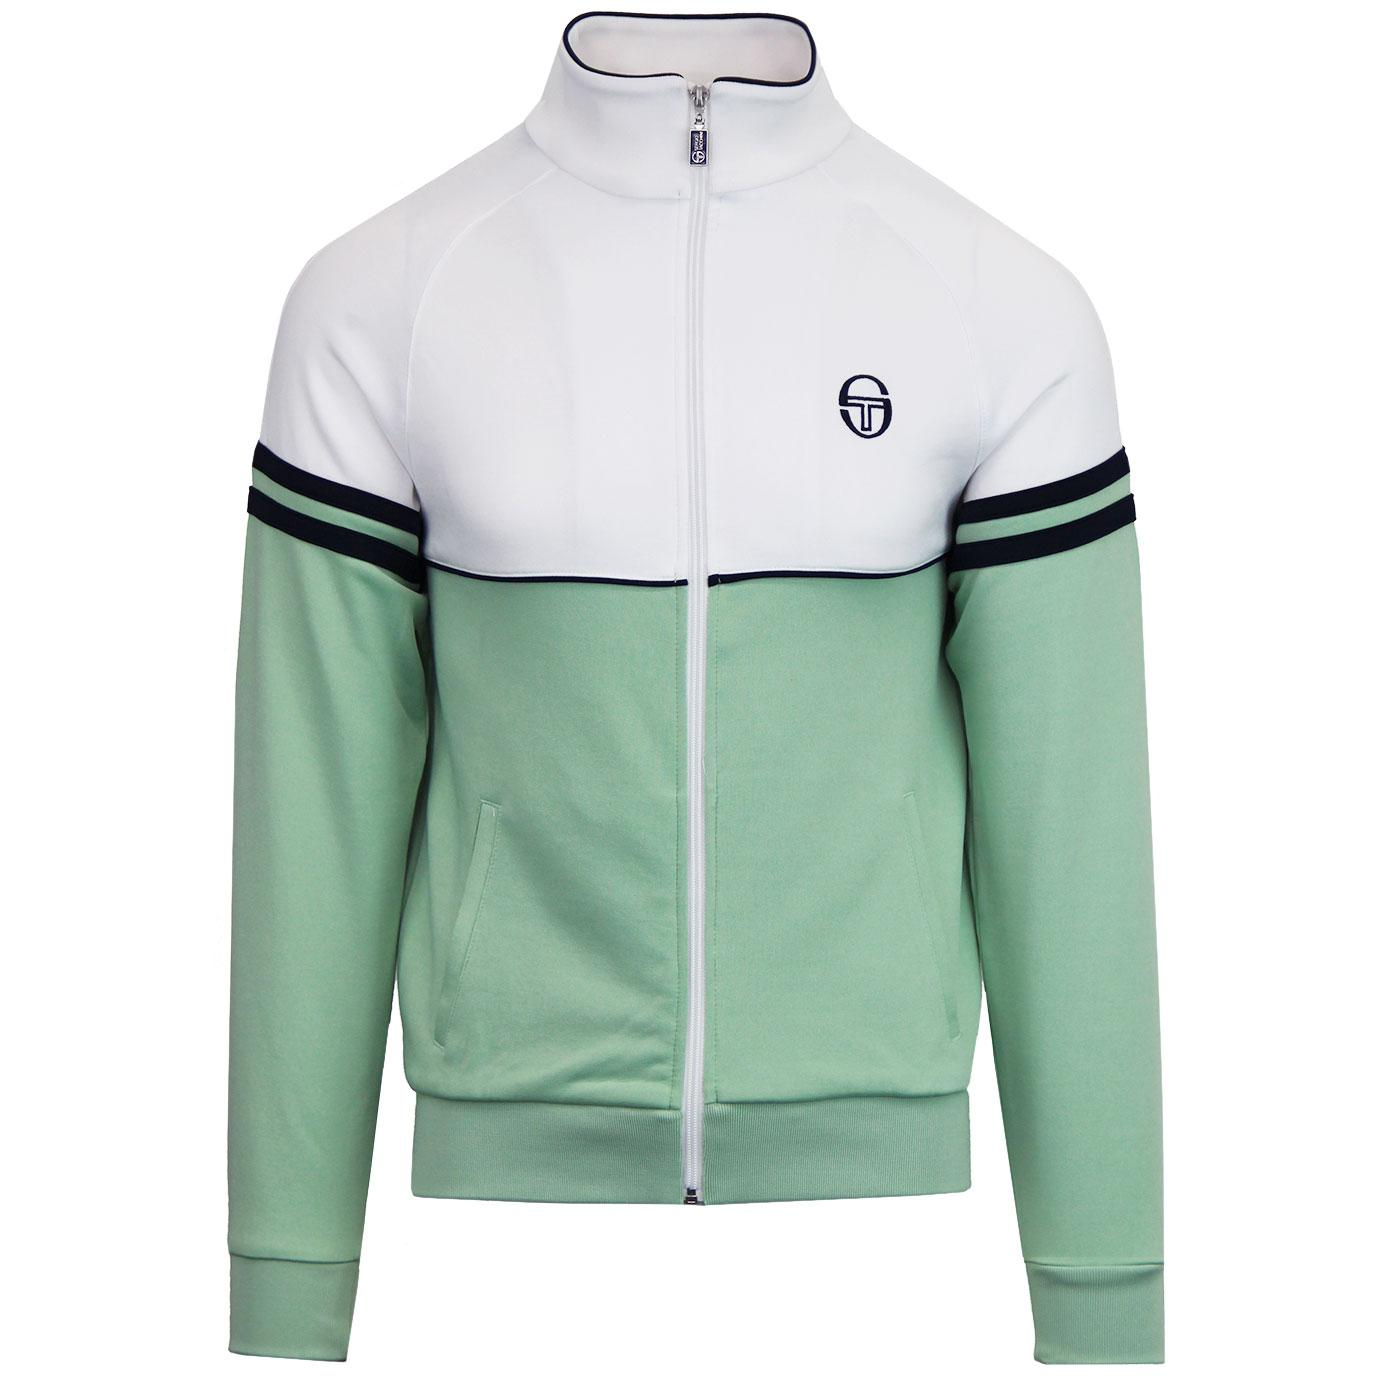 Orion SERGIO TACCHINI Retro 80's Track Top